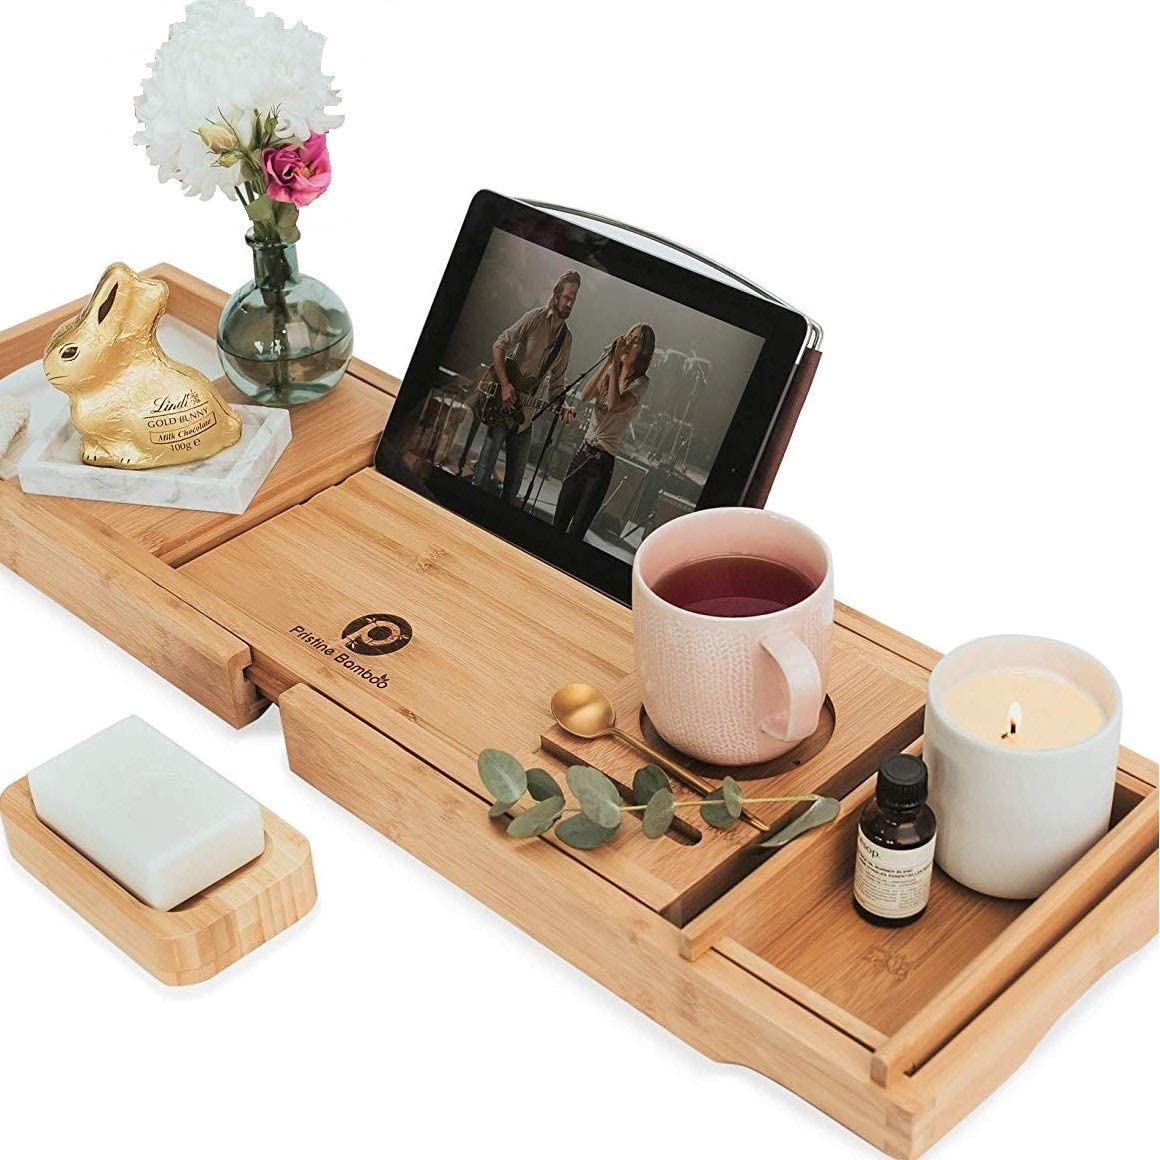 Amazon Com Pristine Bamboo Bath Caddy Tray For Tub Expandable Bath Tray For Two Bath Tub Tray For Bath With Ipad Iphone Book And Wine Glass Holder Calming Natural Kitchen